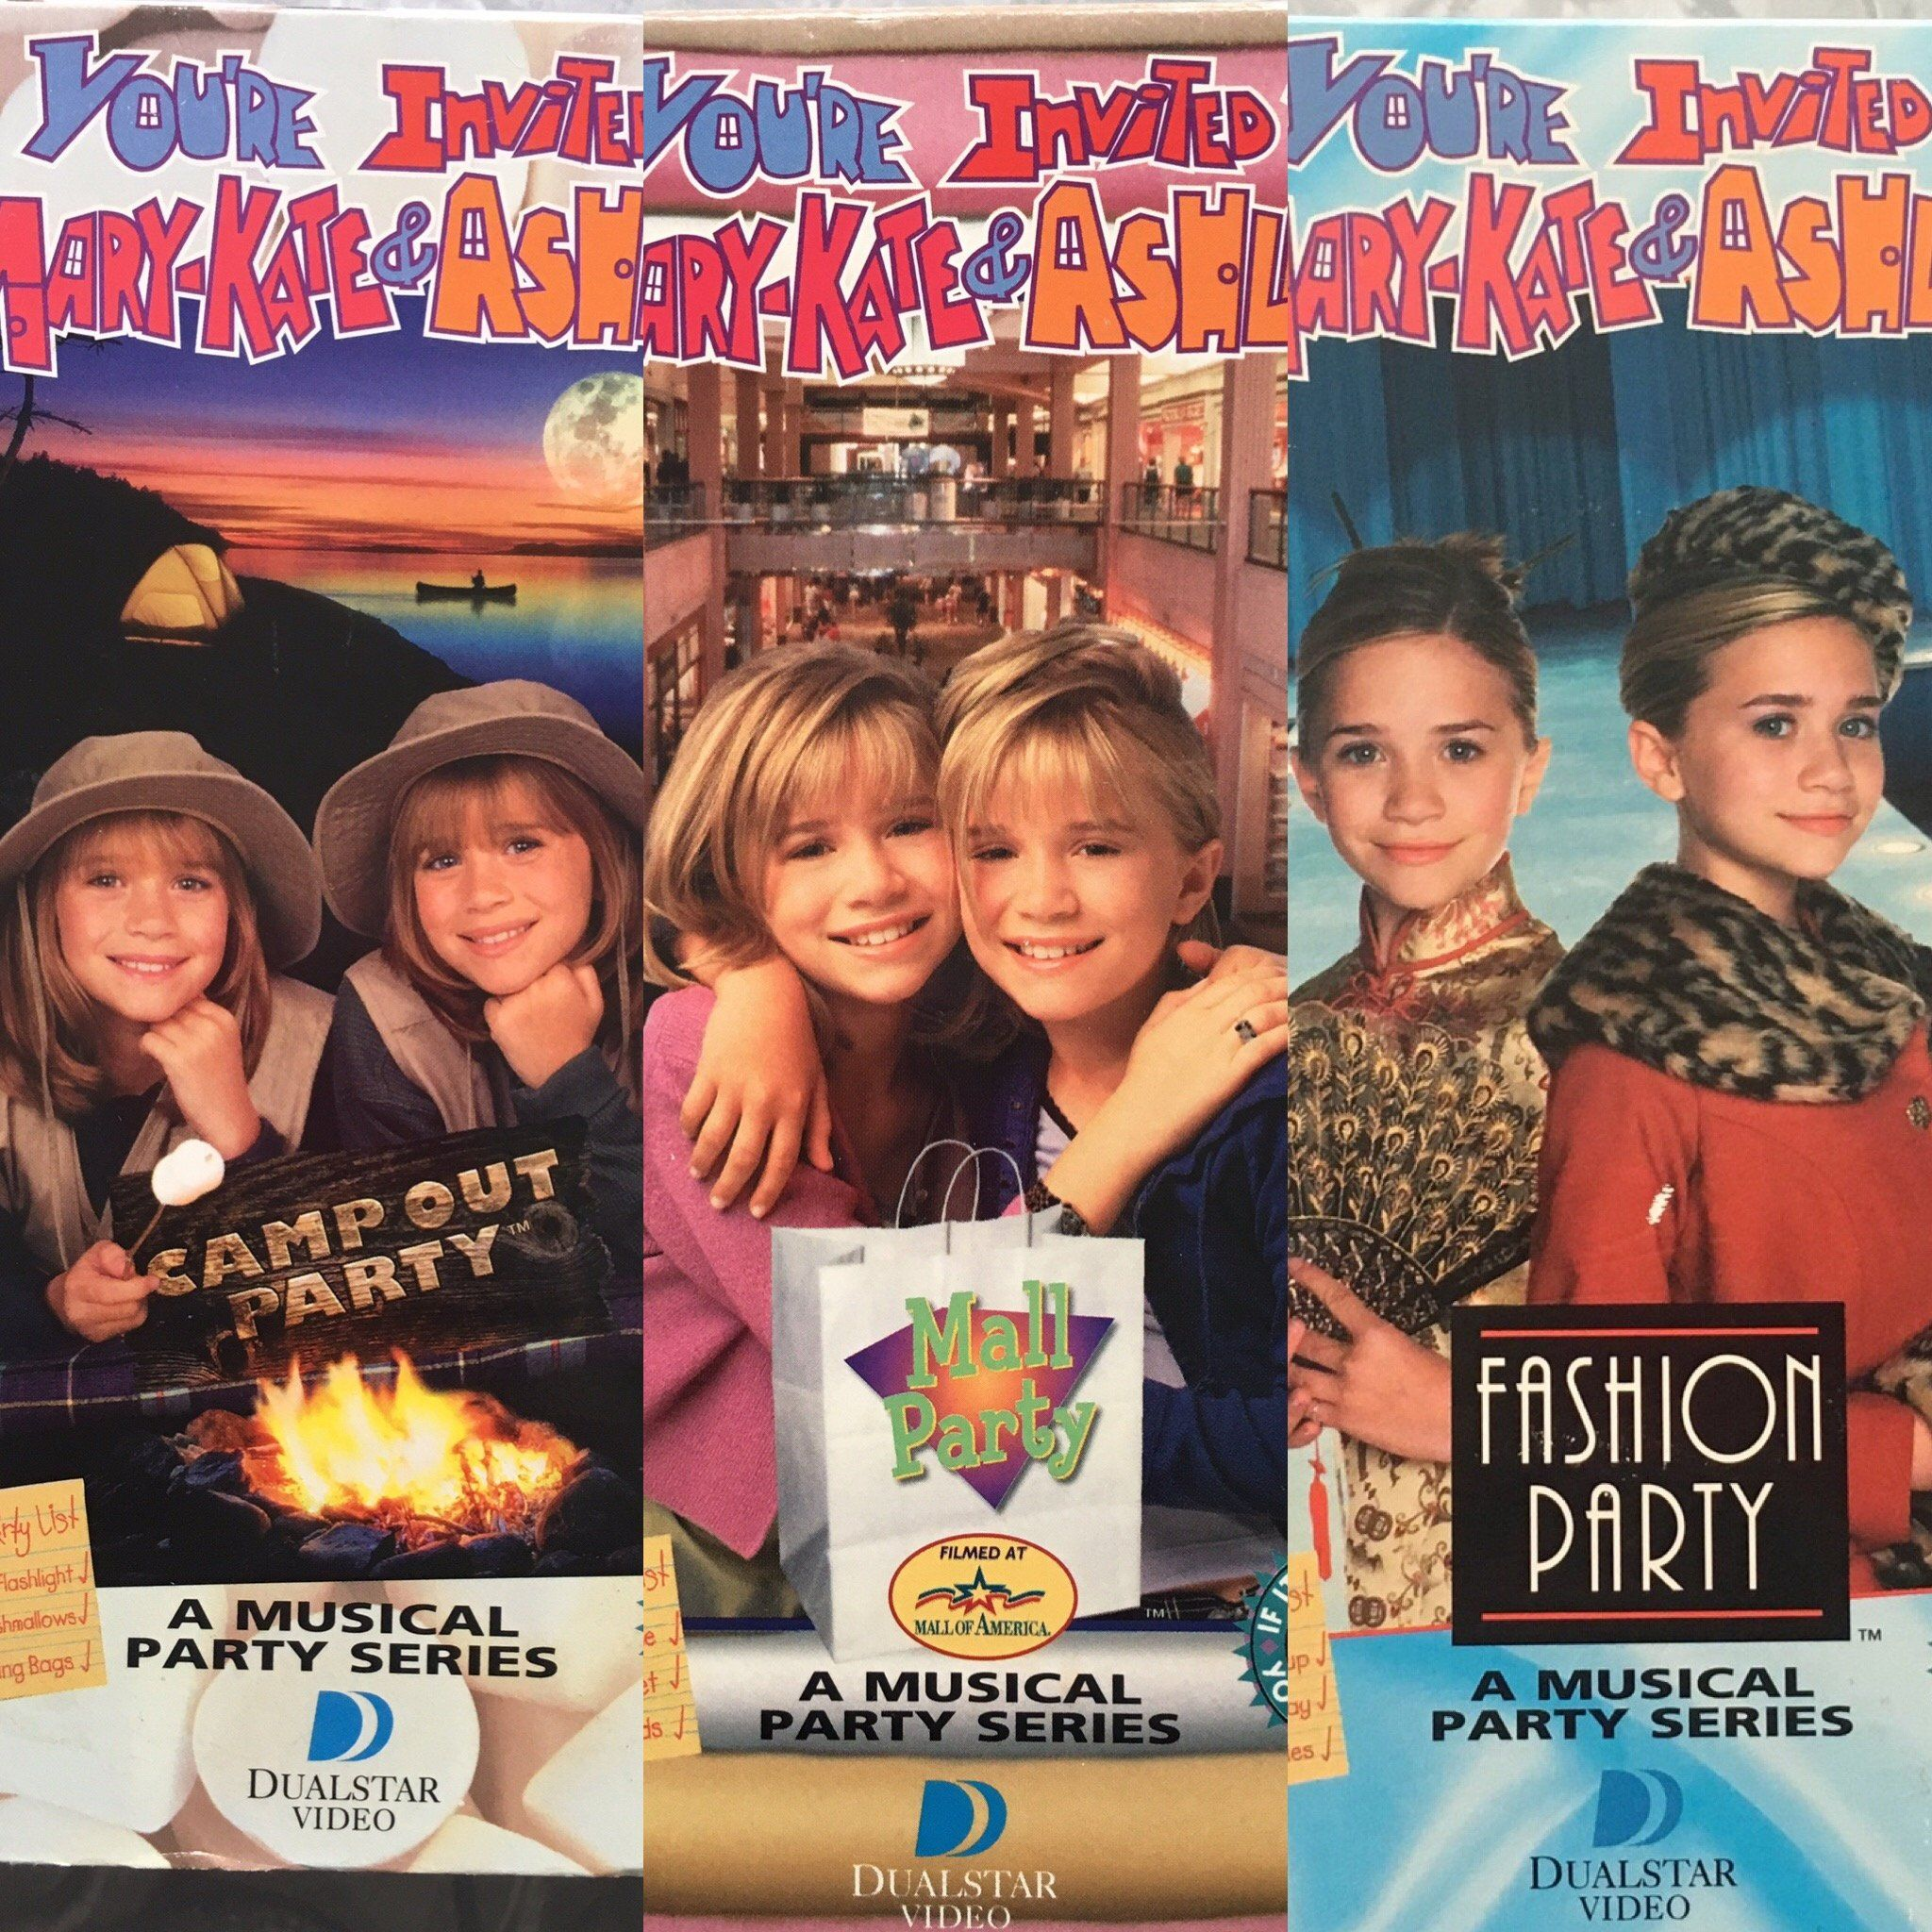 1990s youre invited to marykate ashleys series